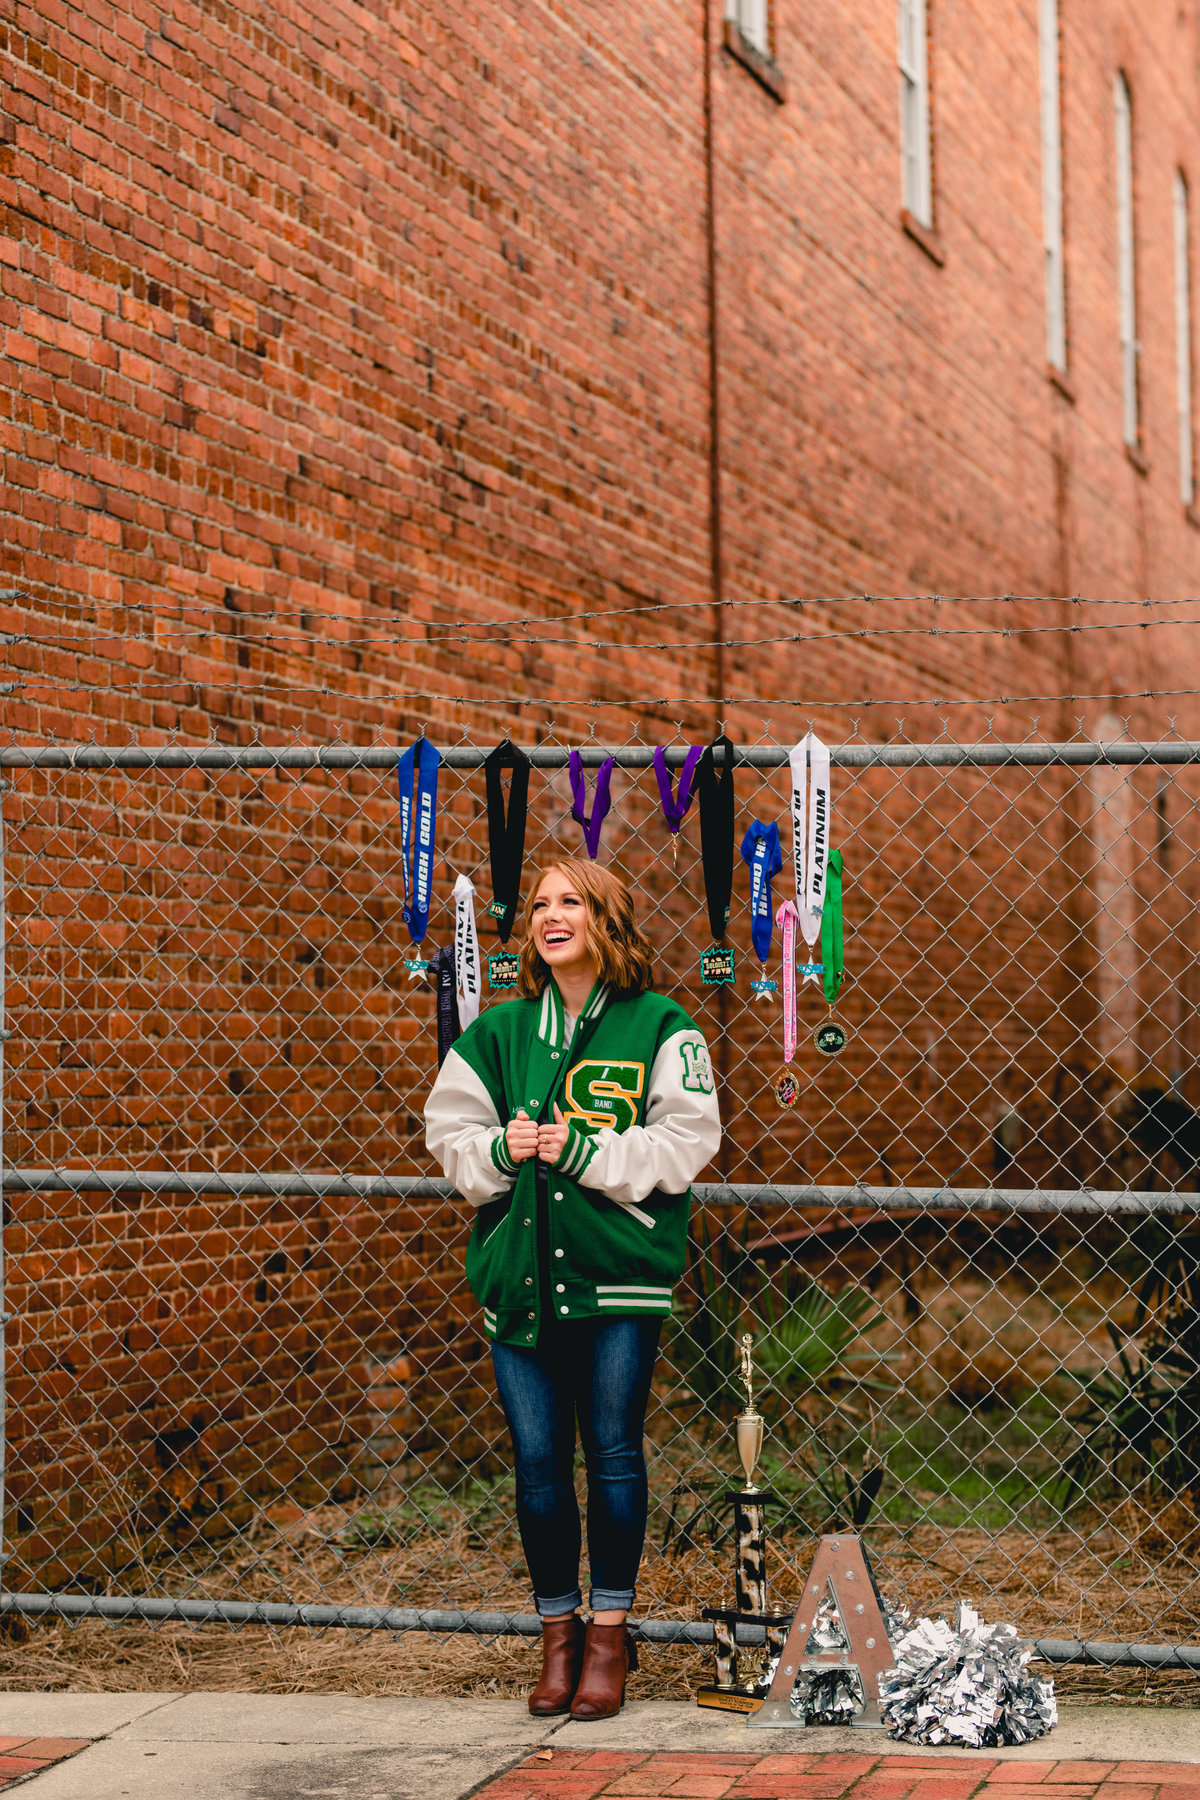 Senior portrait session including medals from sports and letterman jacket in north florida.